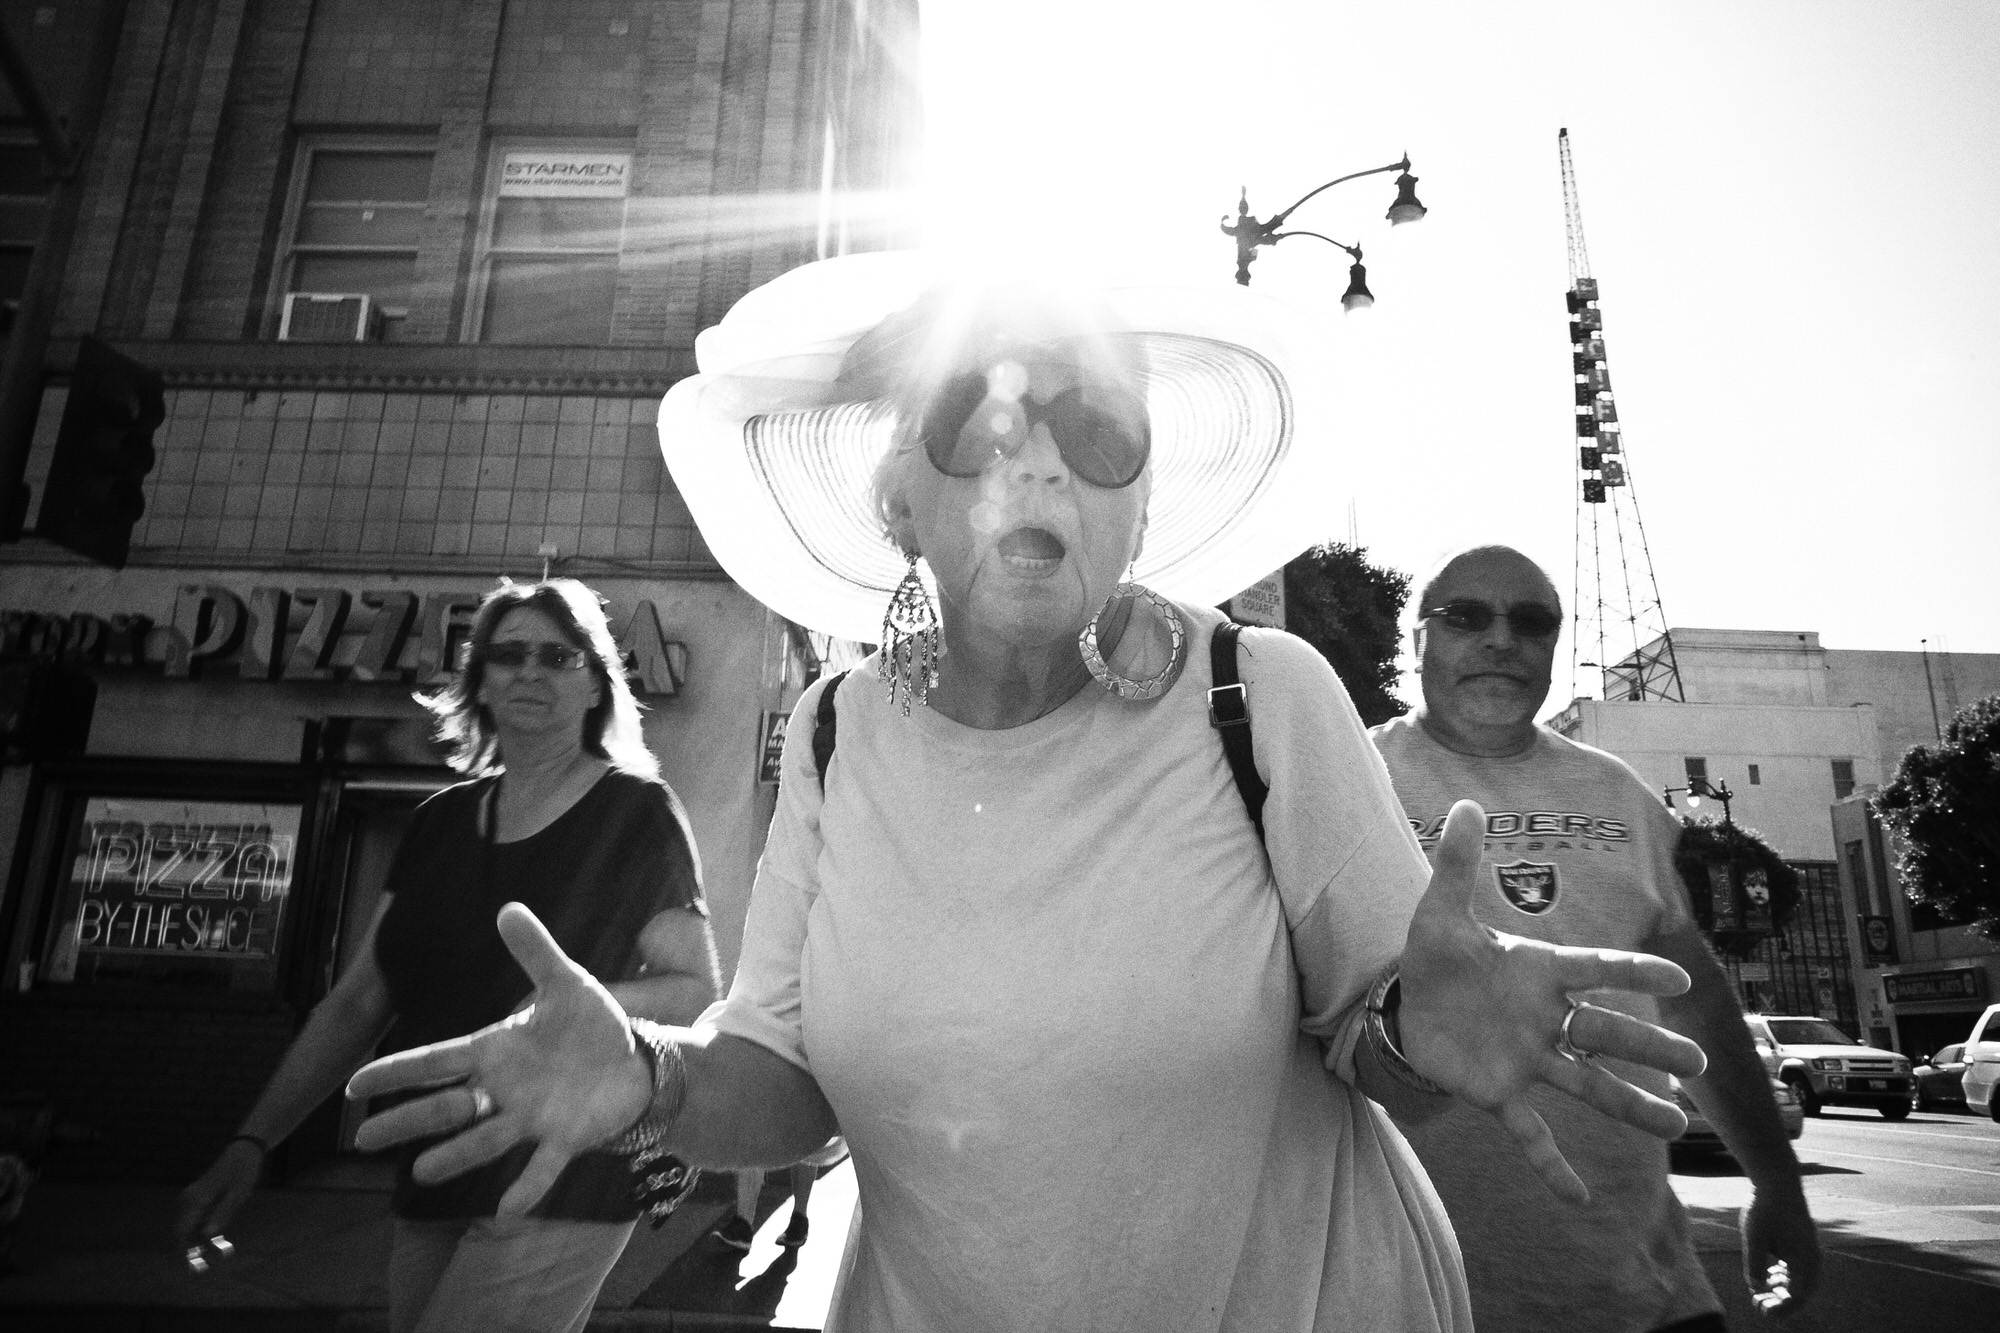 eric kim street photography - the city of angels - black and white-1-jazz-hands-flash-hollywood.jpg